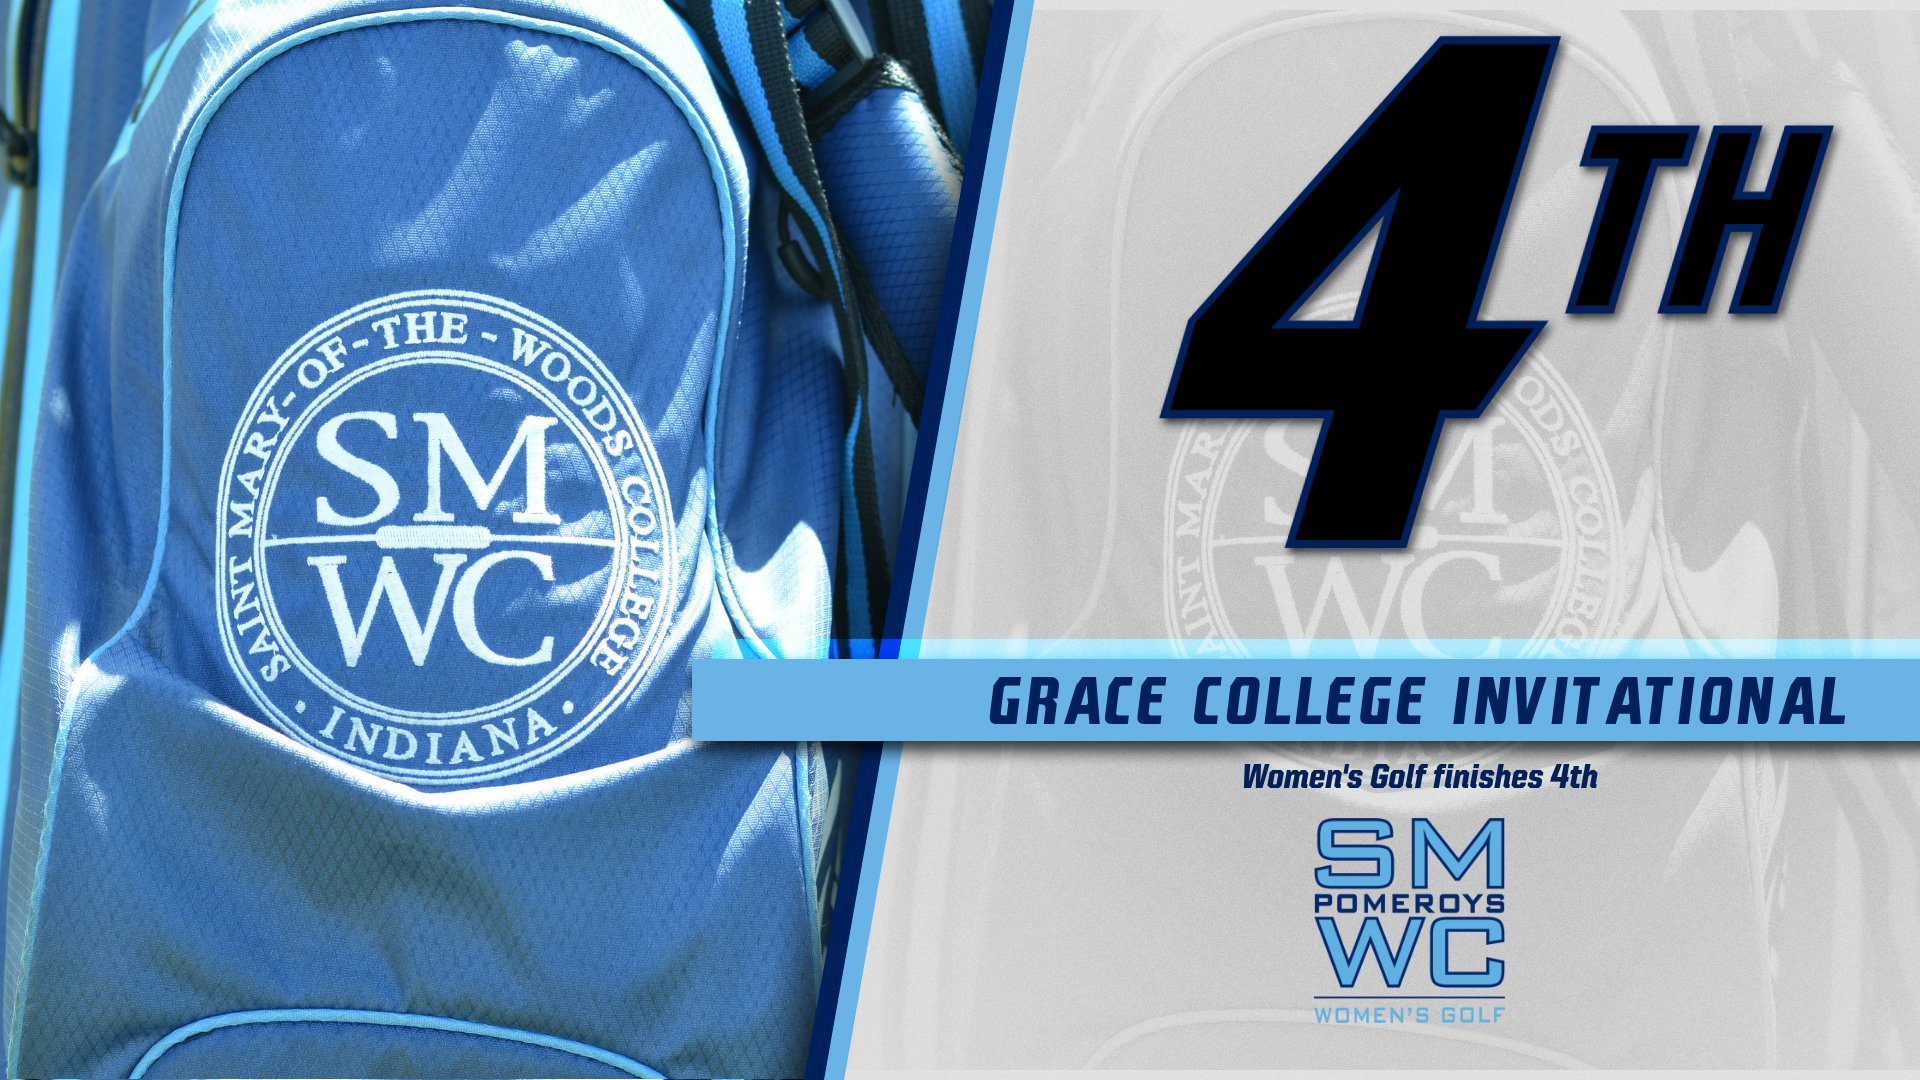 Women's Golf Finishes Fourth at the Grace College Invitational